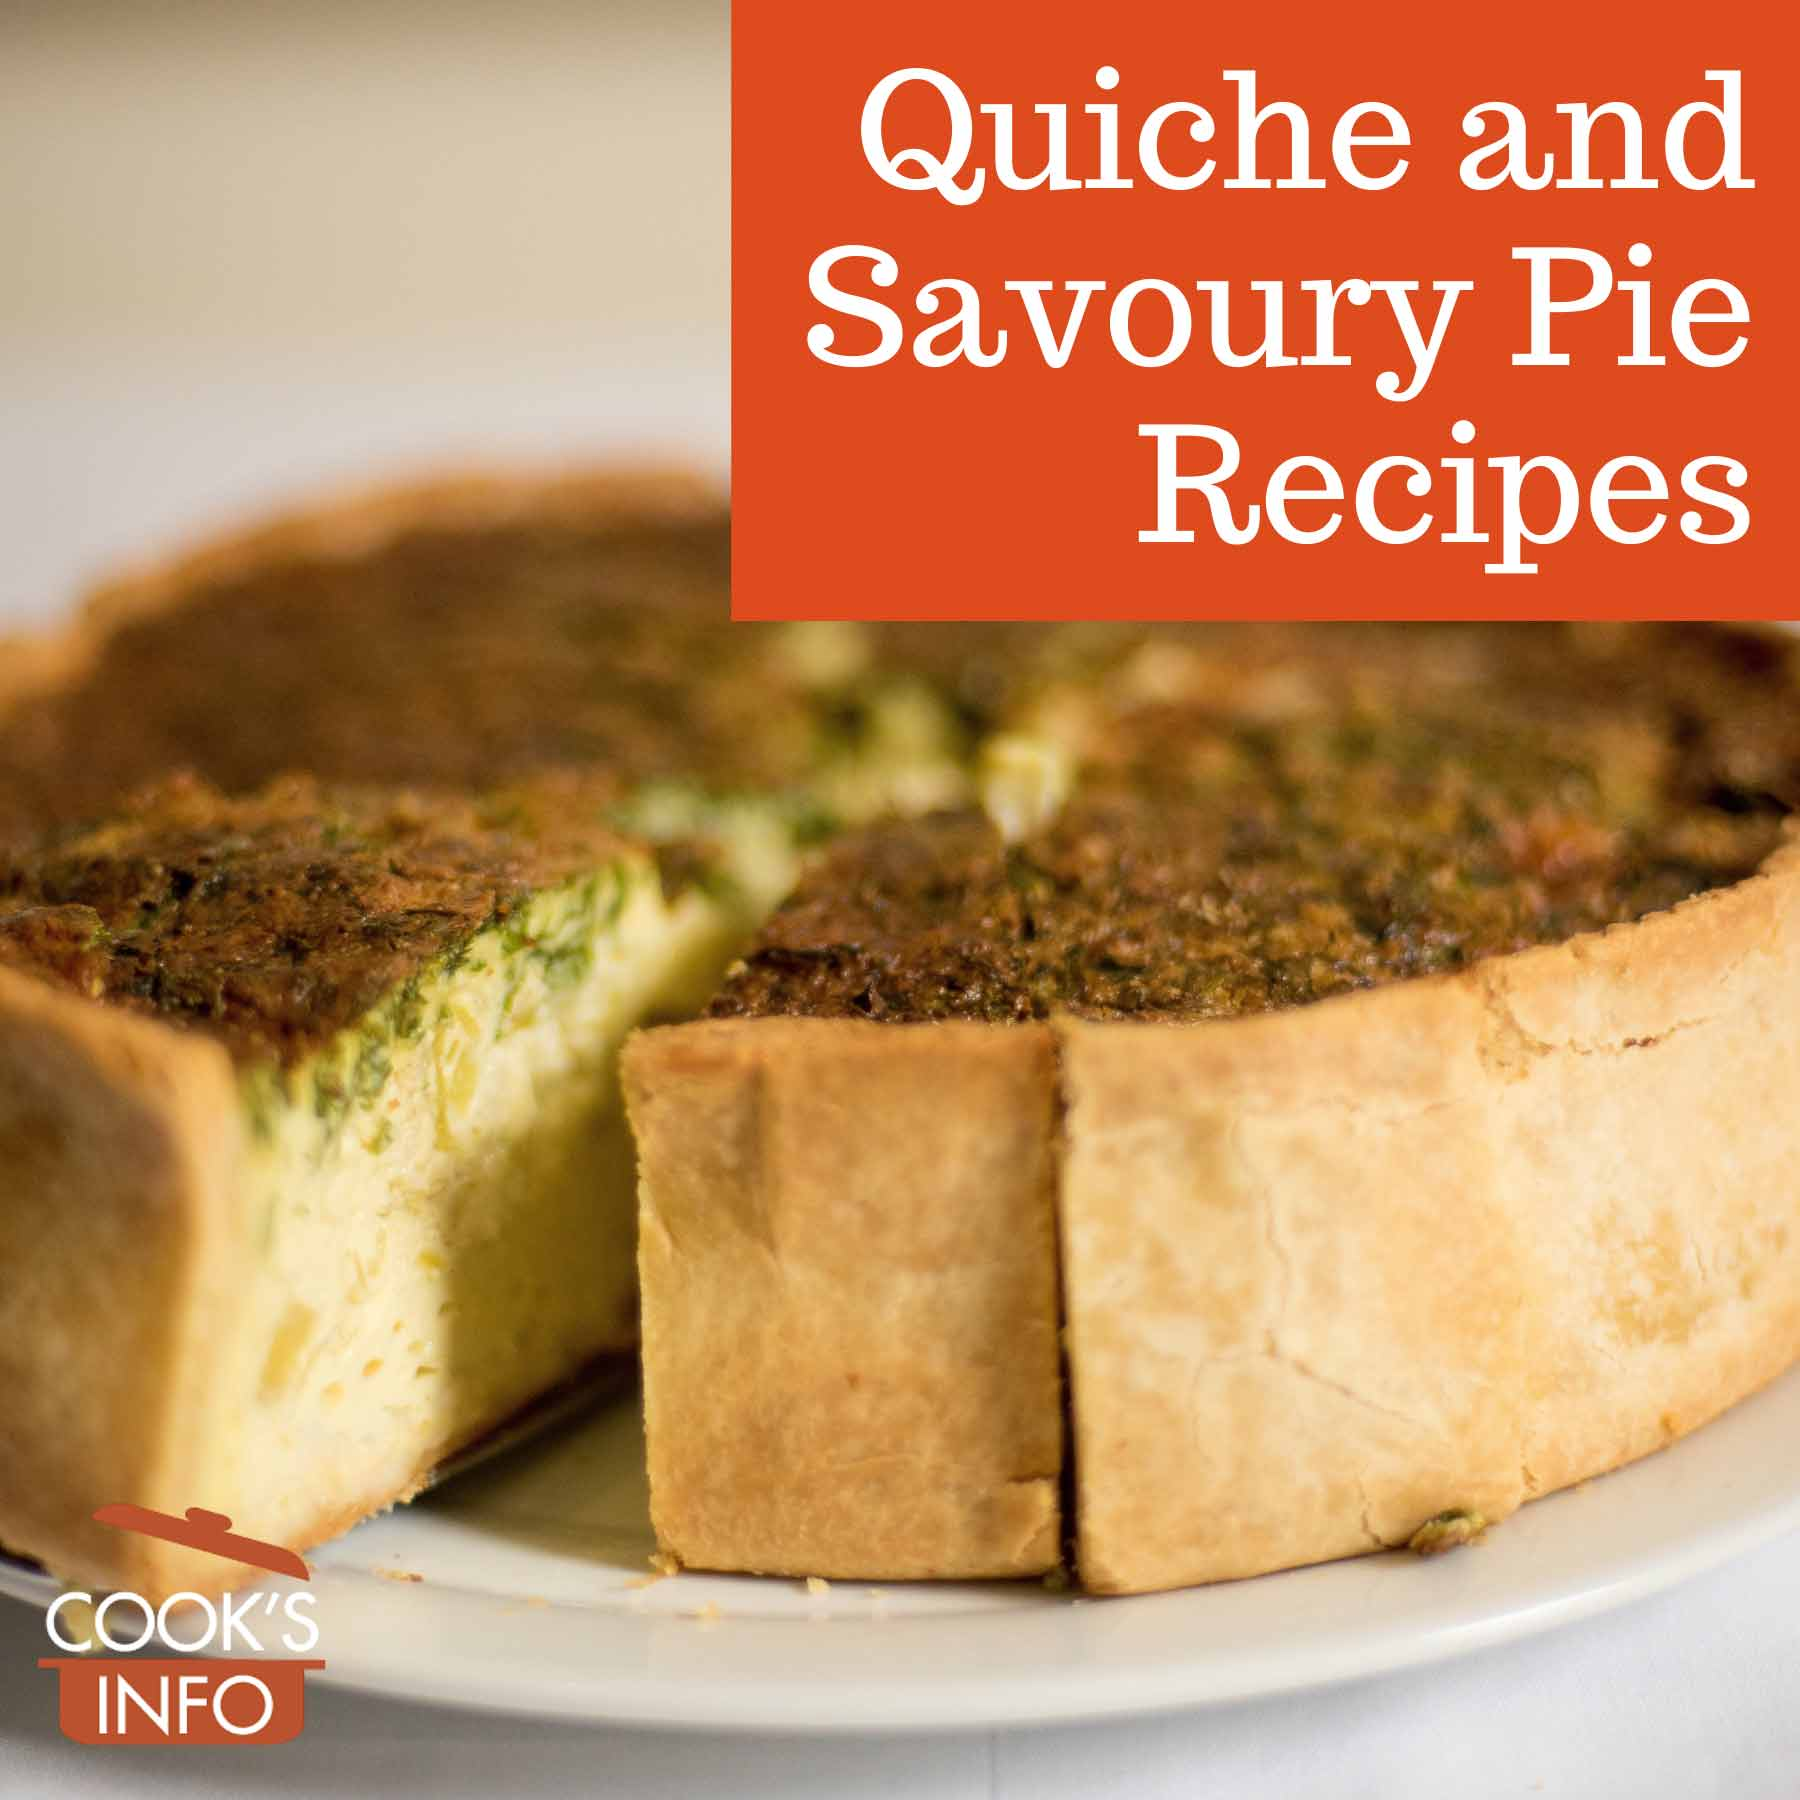 Deep dish quiche with a slice cut